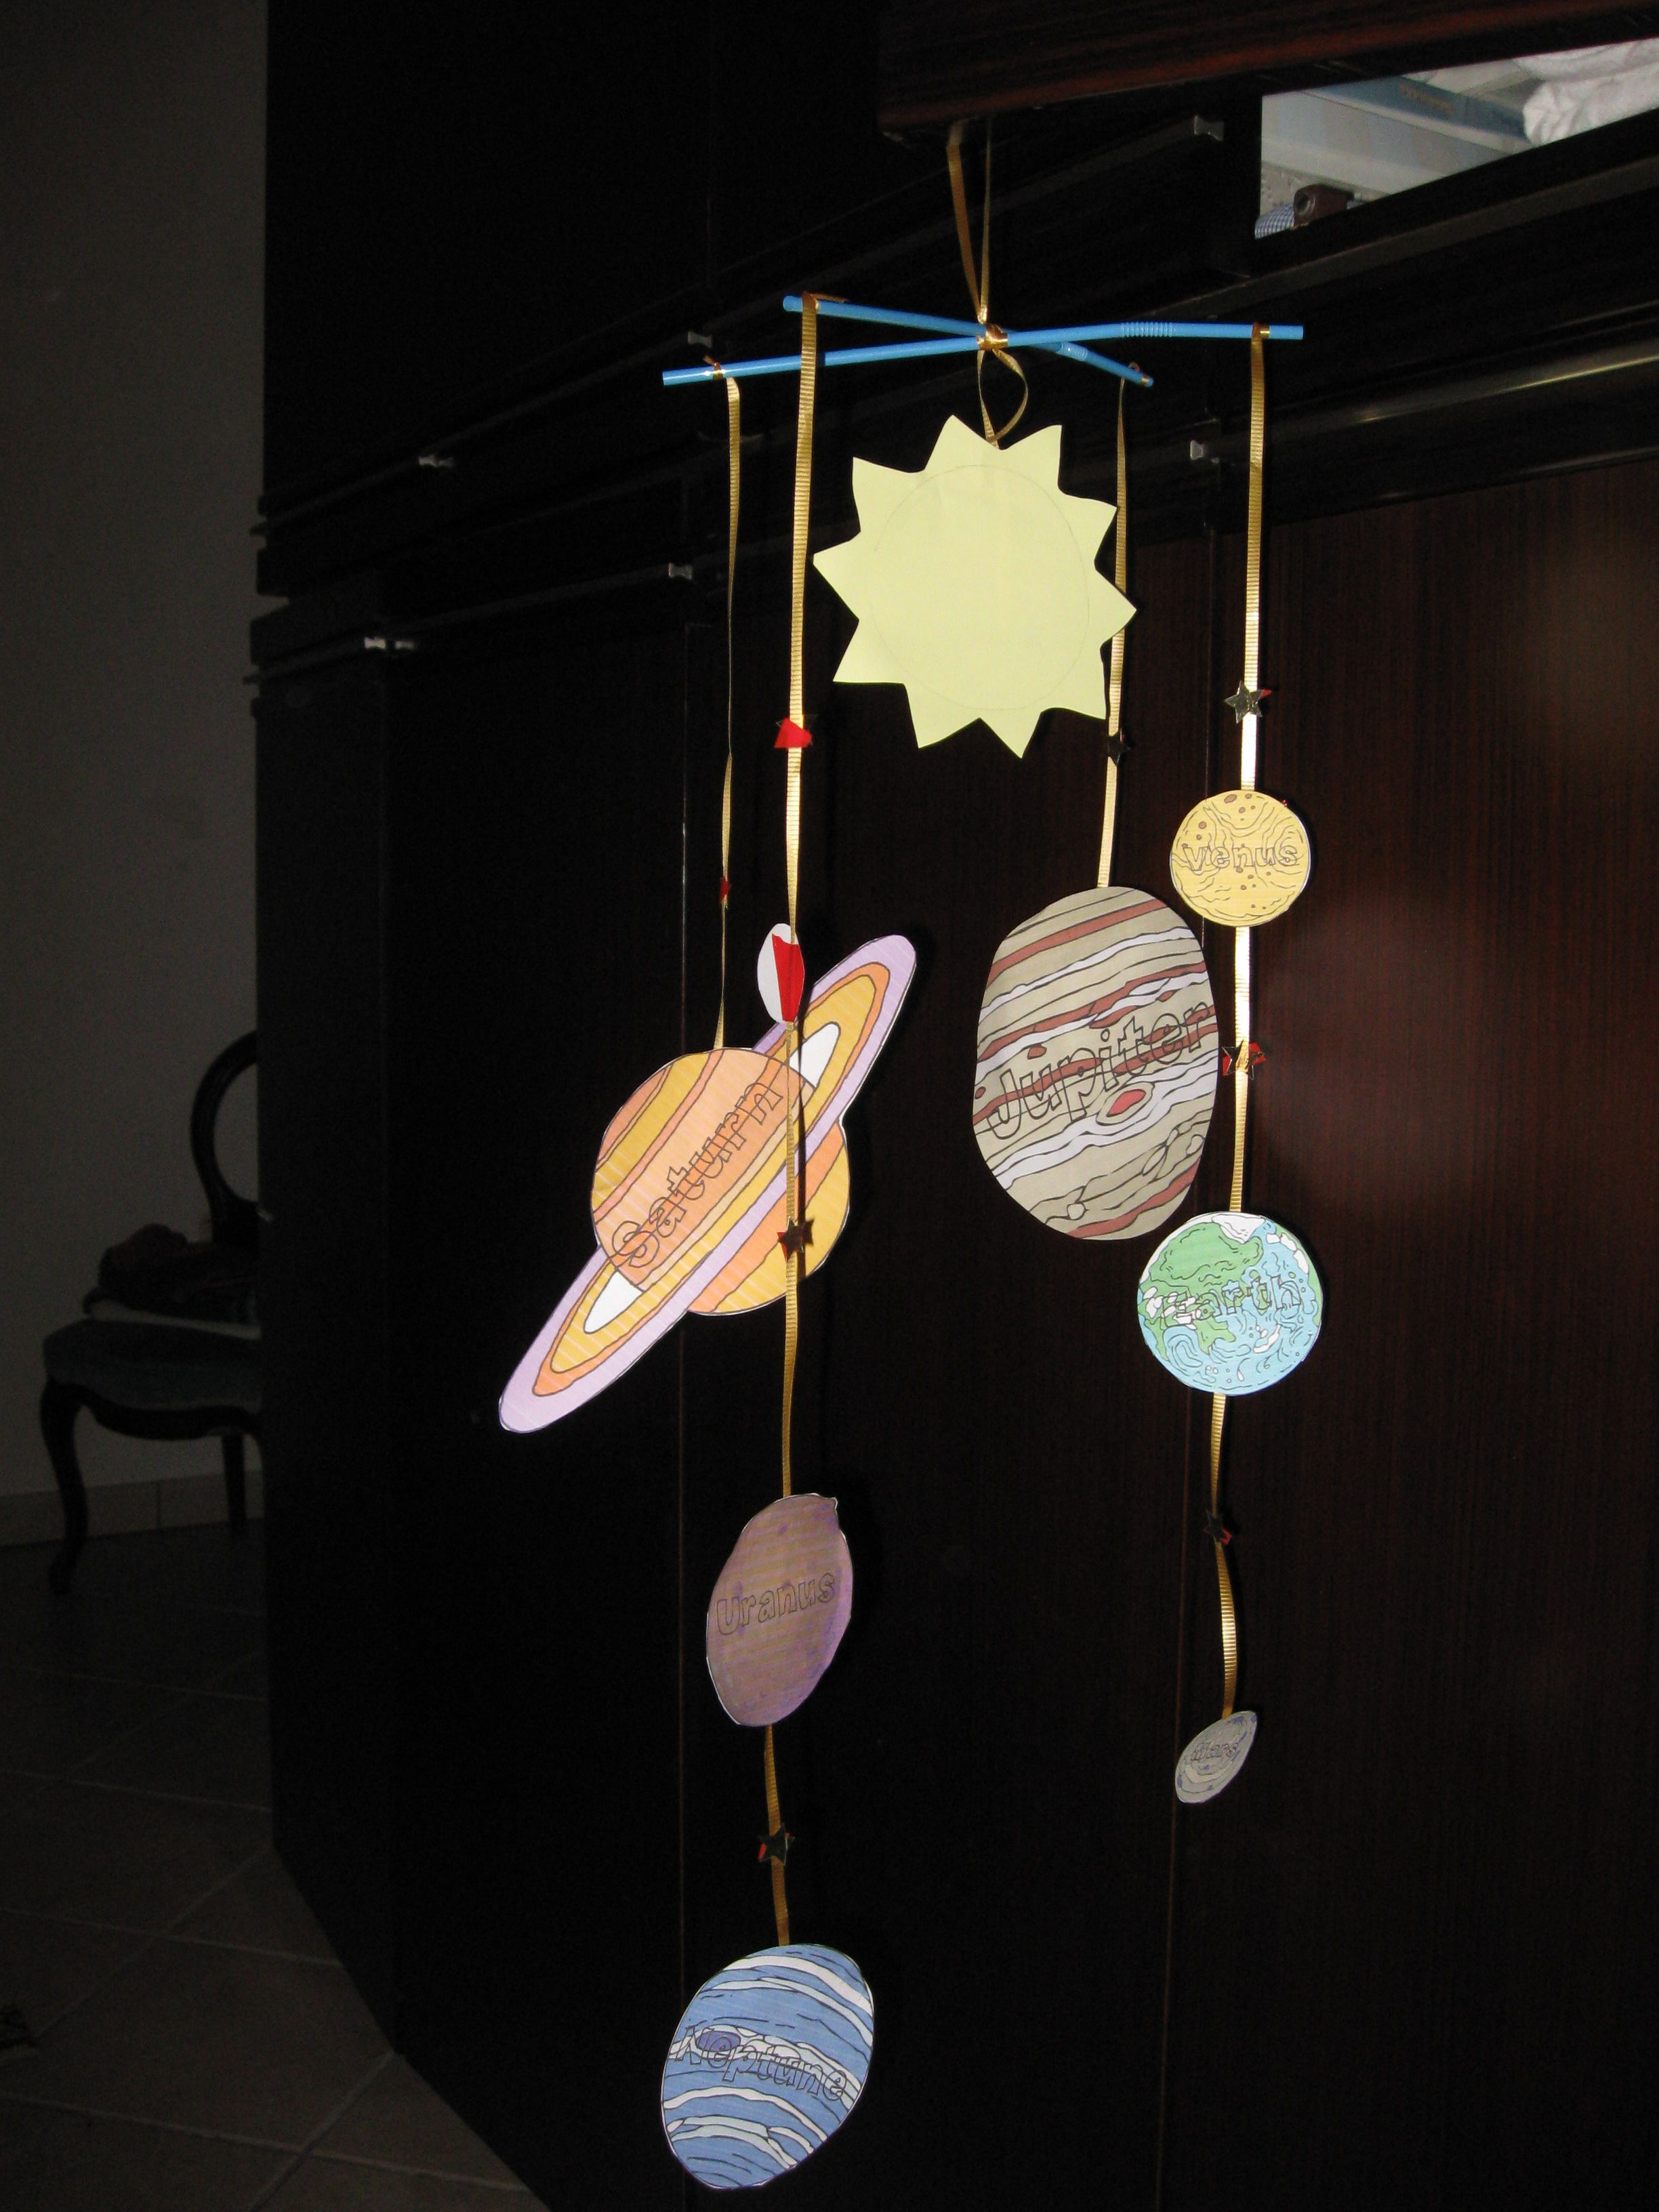 Pinterest Solar System Cutouts (page 2) - Pics about space